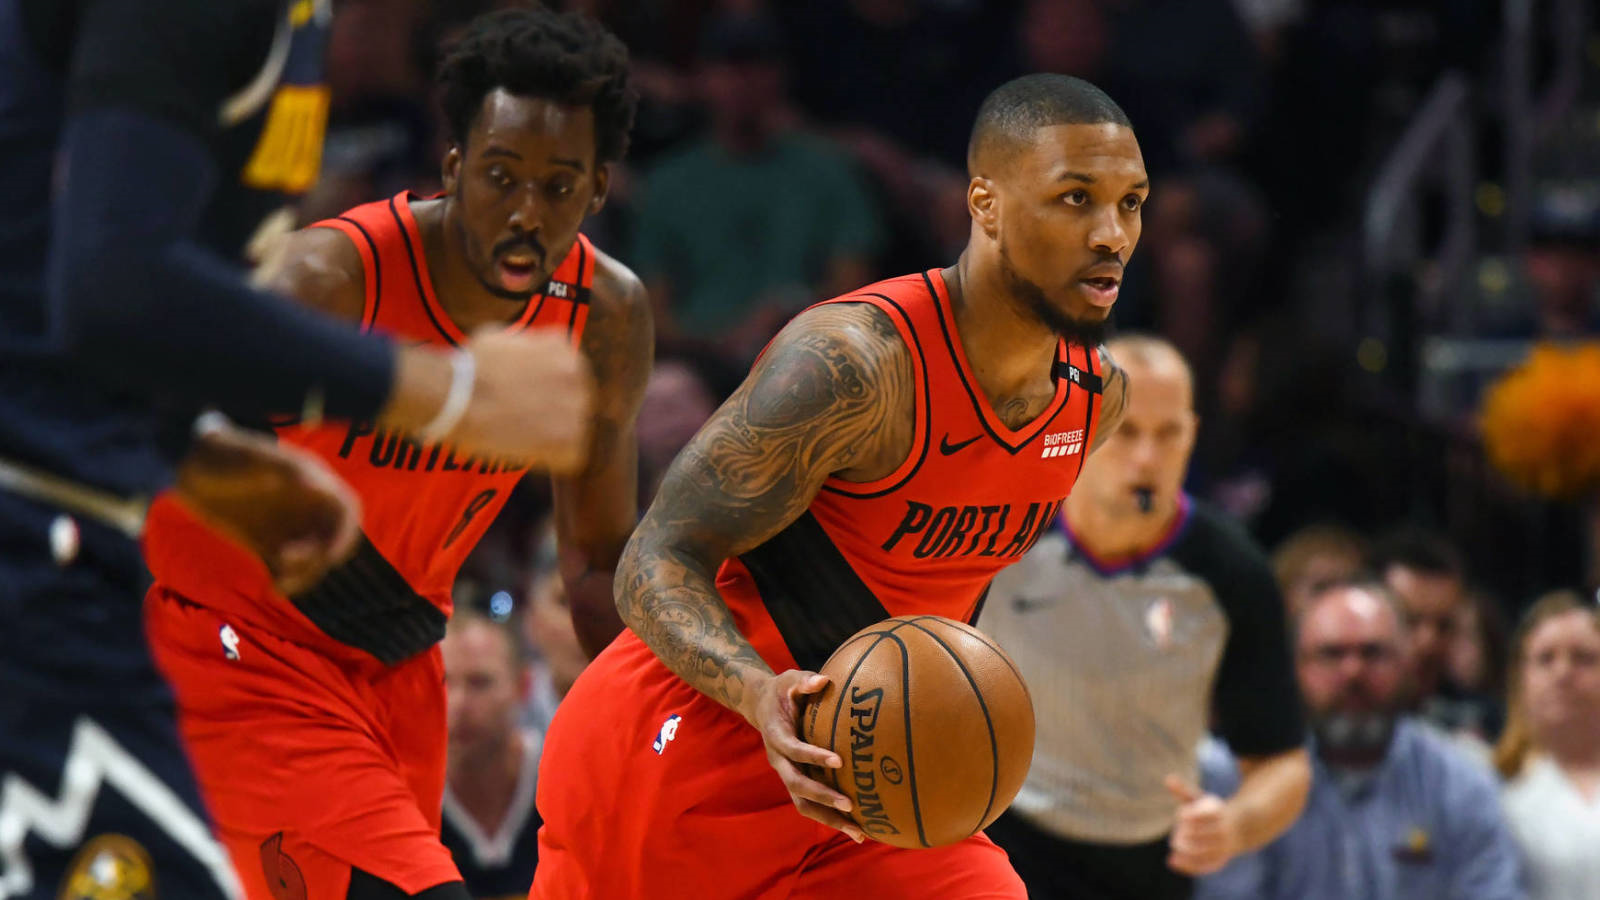 Top takeaways from Blazers-Nuggets Game 7 - Inhale Sports